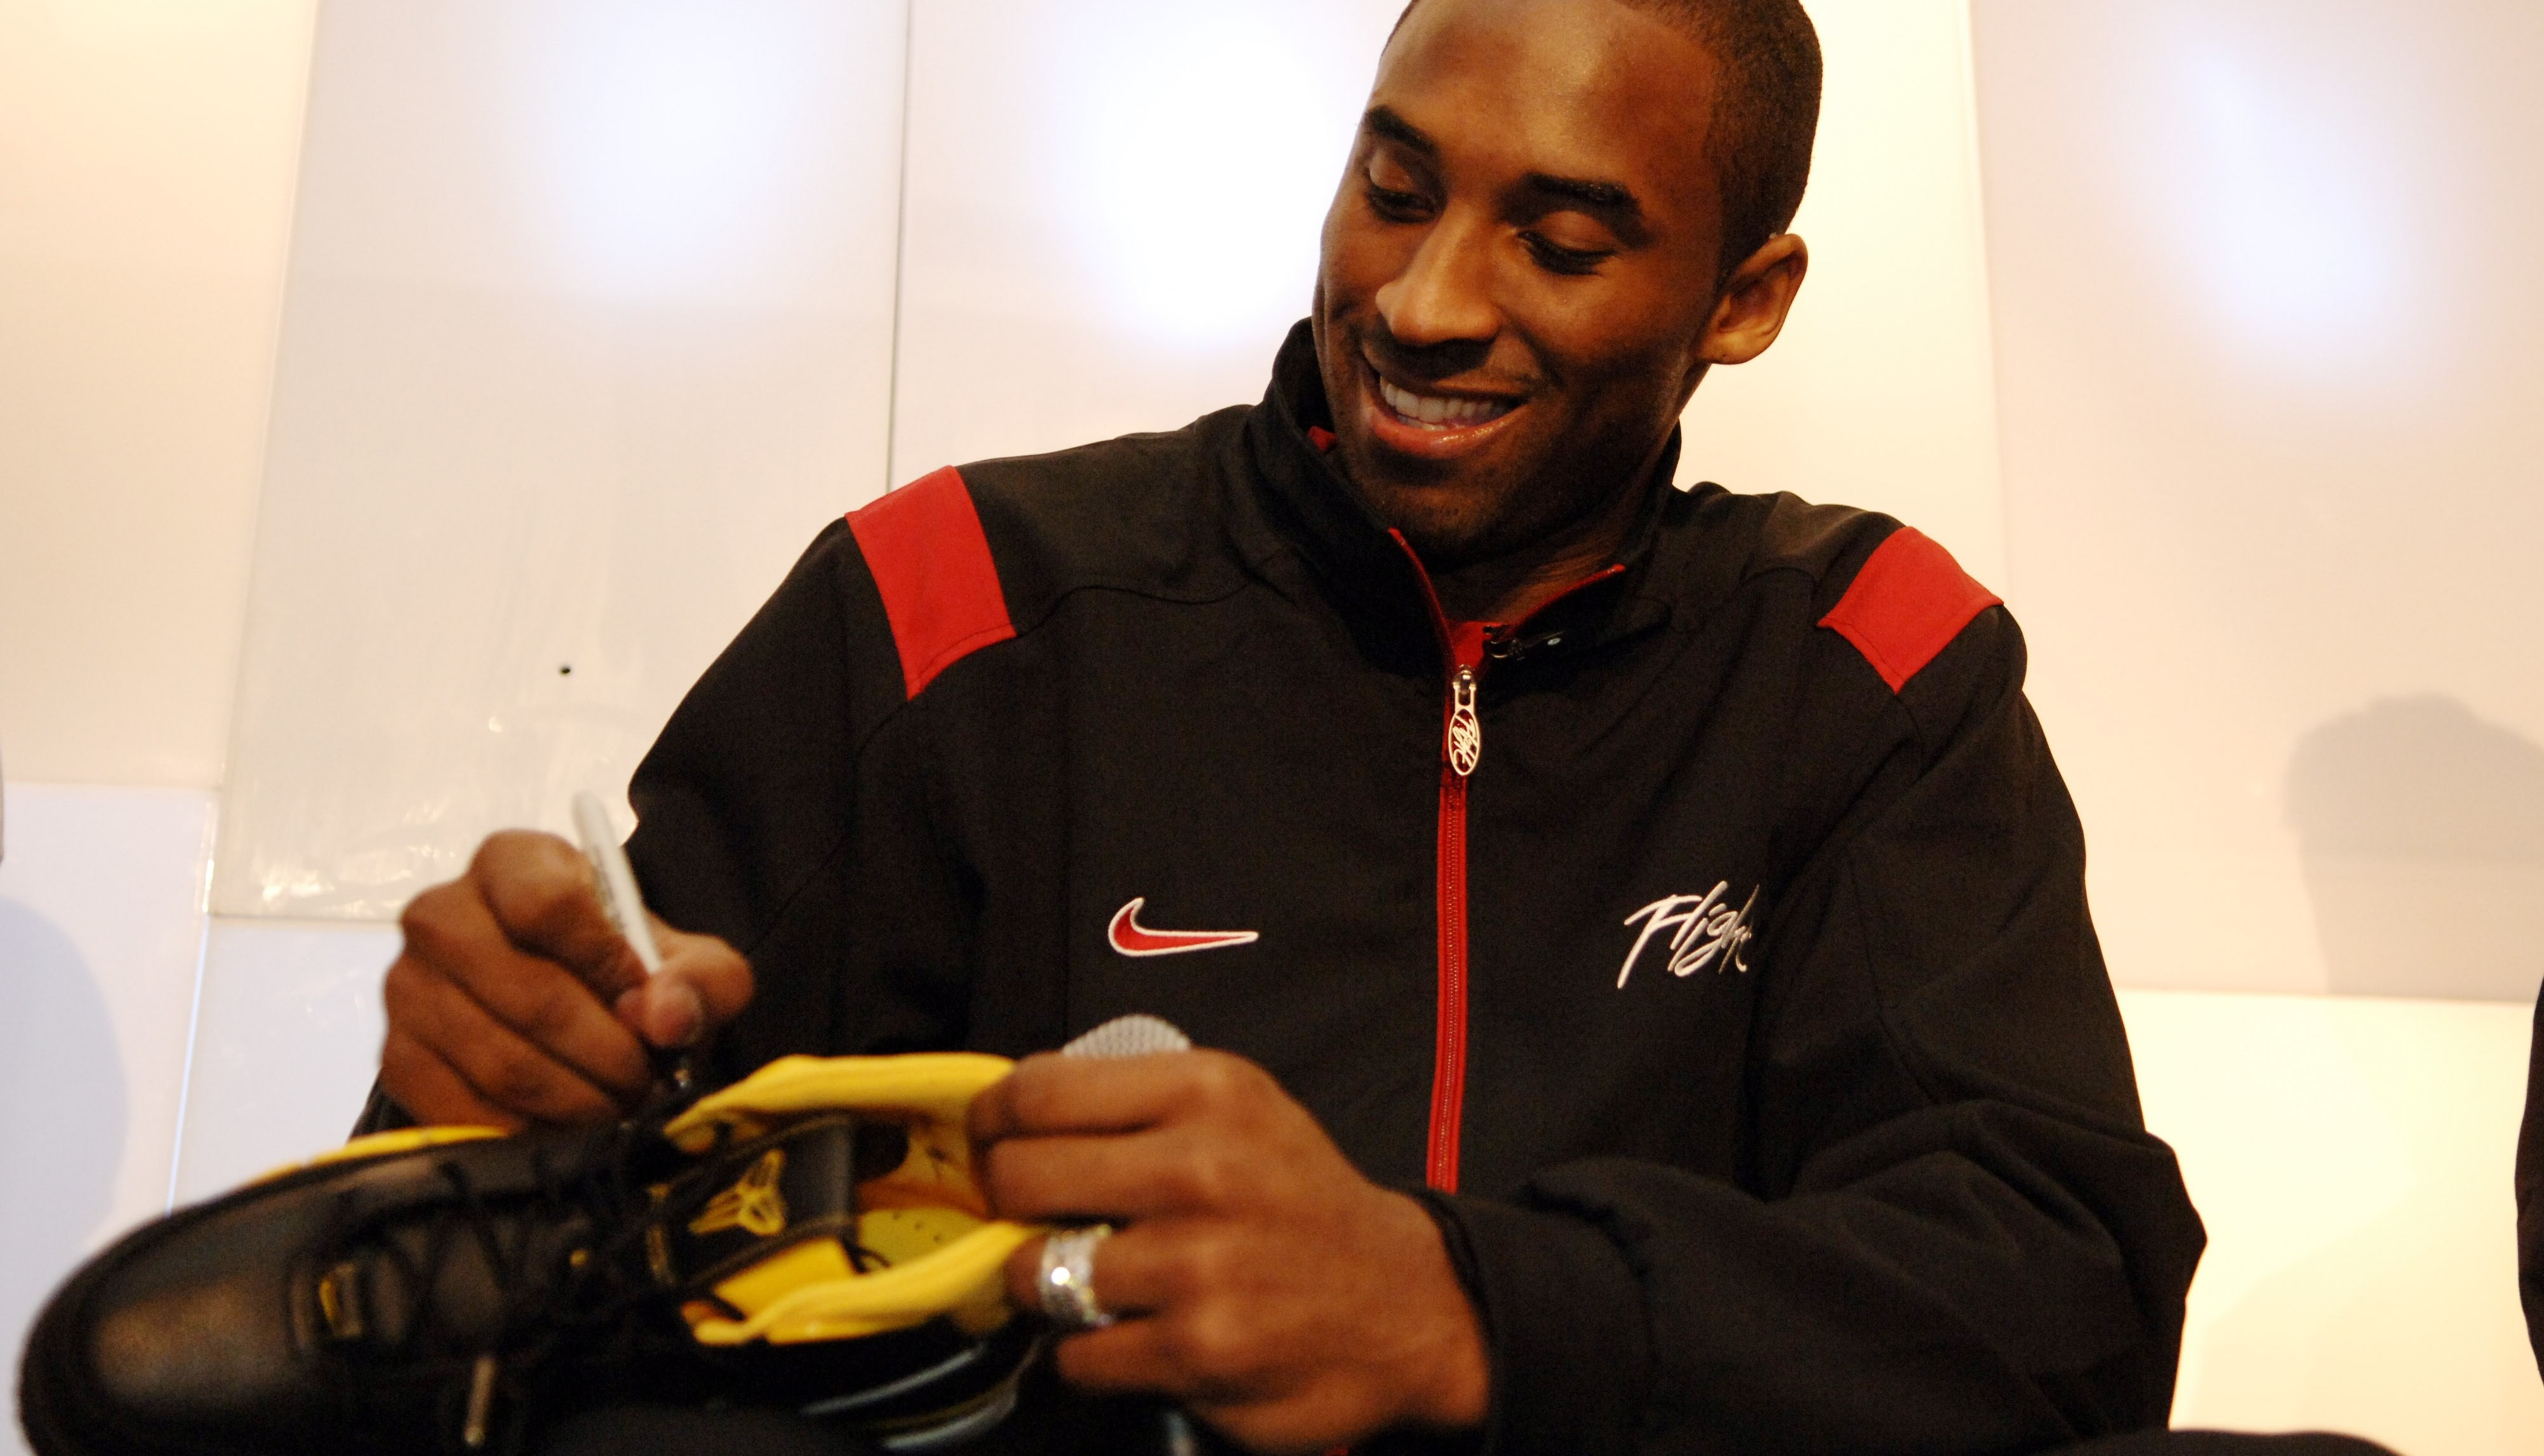 Kobe Bryant's Unexpected Death Poses Dilemma for Sneaker